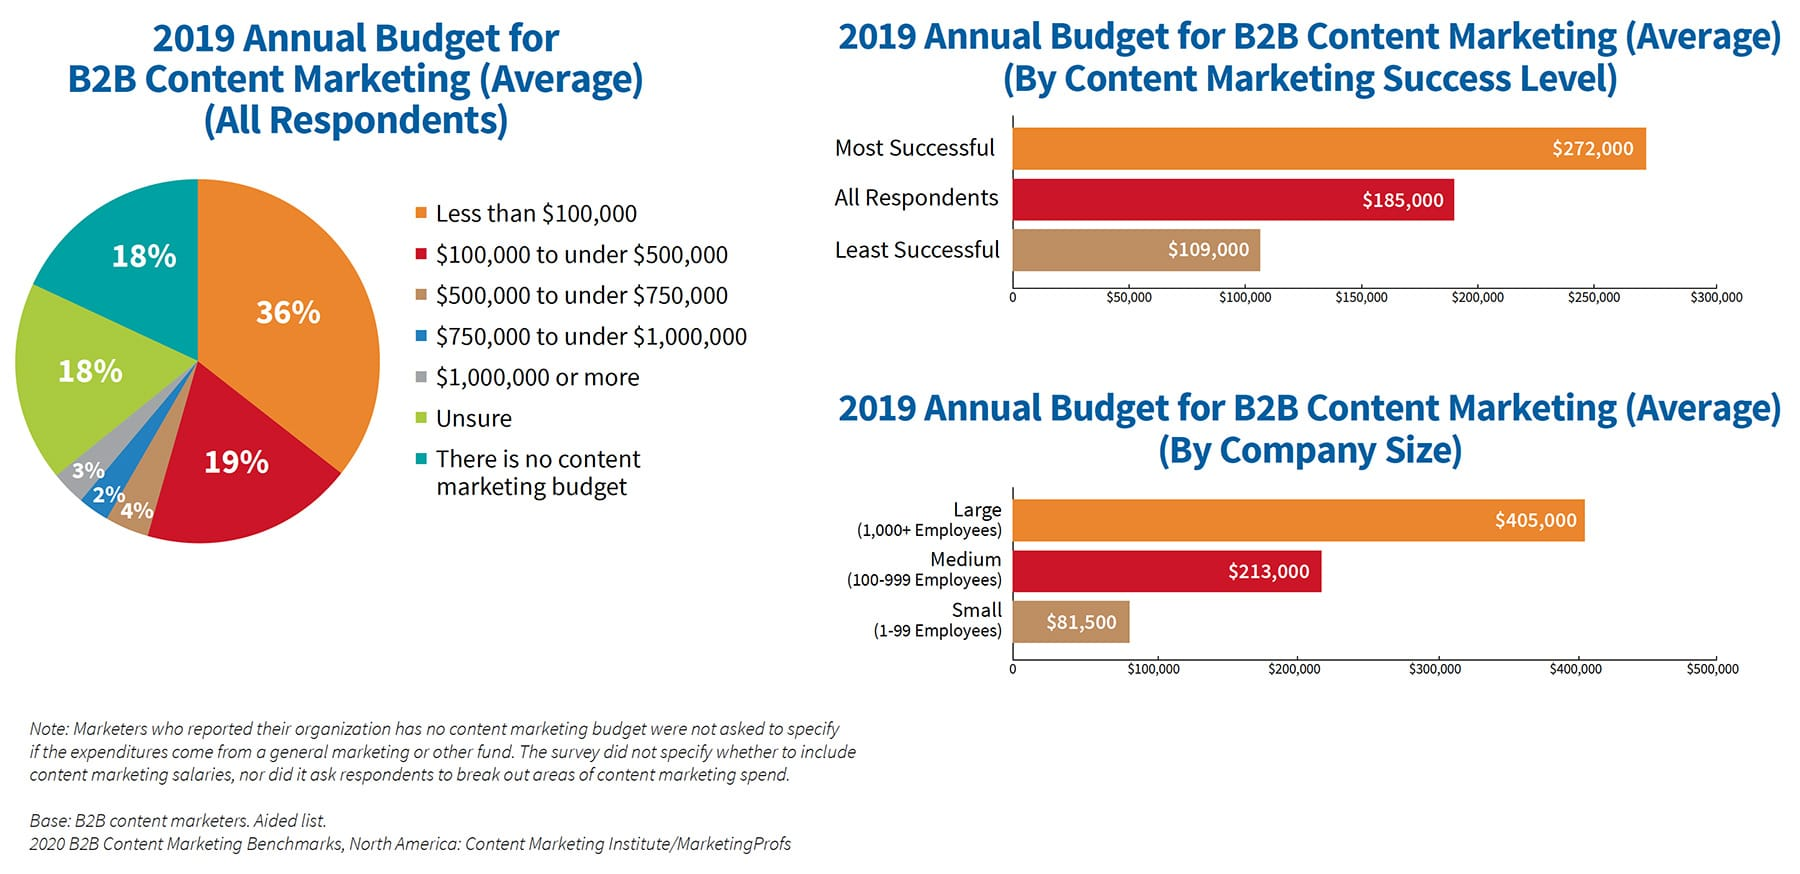 Nearly half of B2B marketers expect their content marketing budget to increase in the year ahead